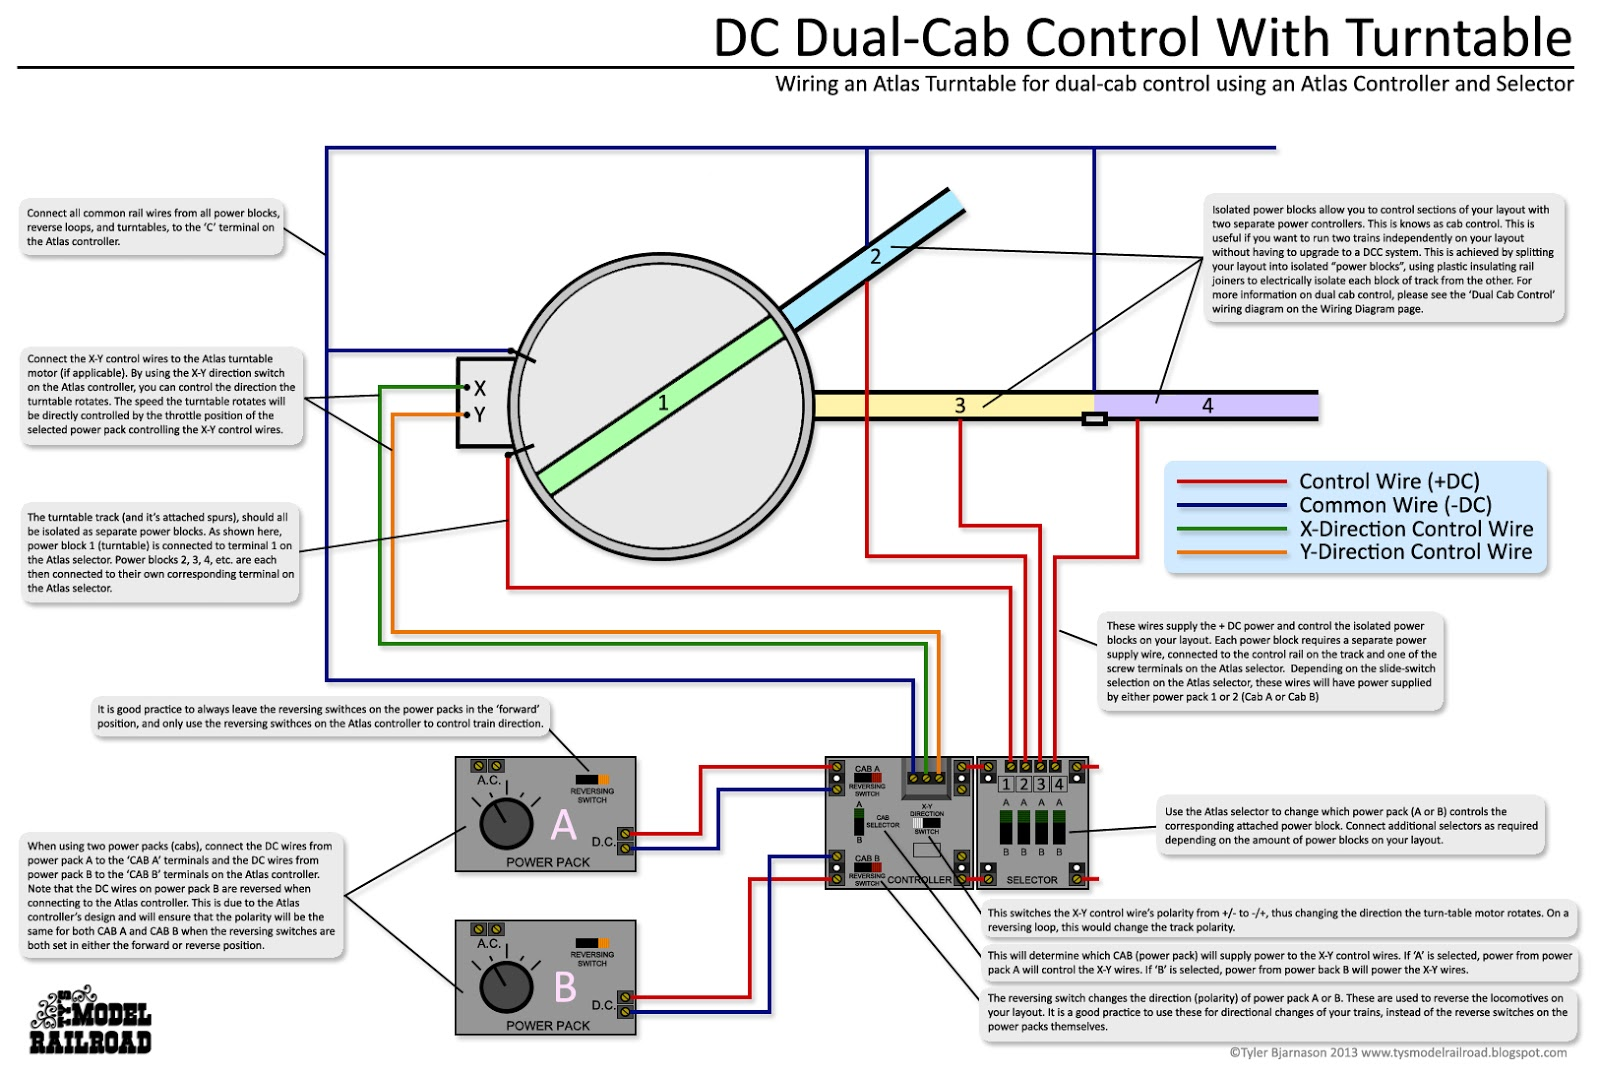 Dual Cab Control Turn Table ty's model railroad wiring diagrams dc wiring diagrams at readyjetset.co